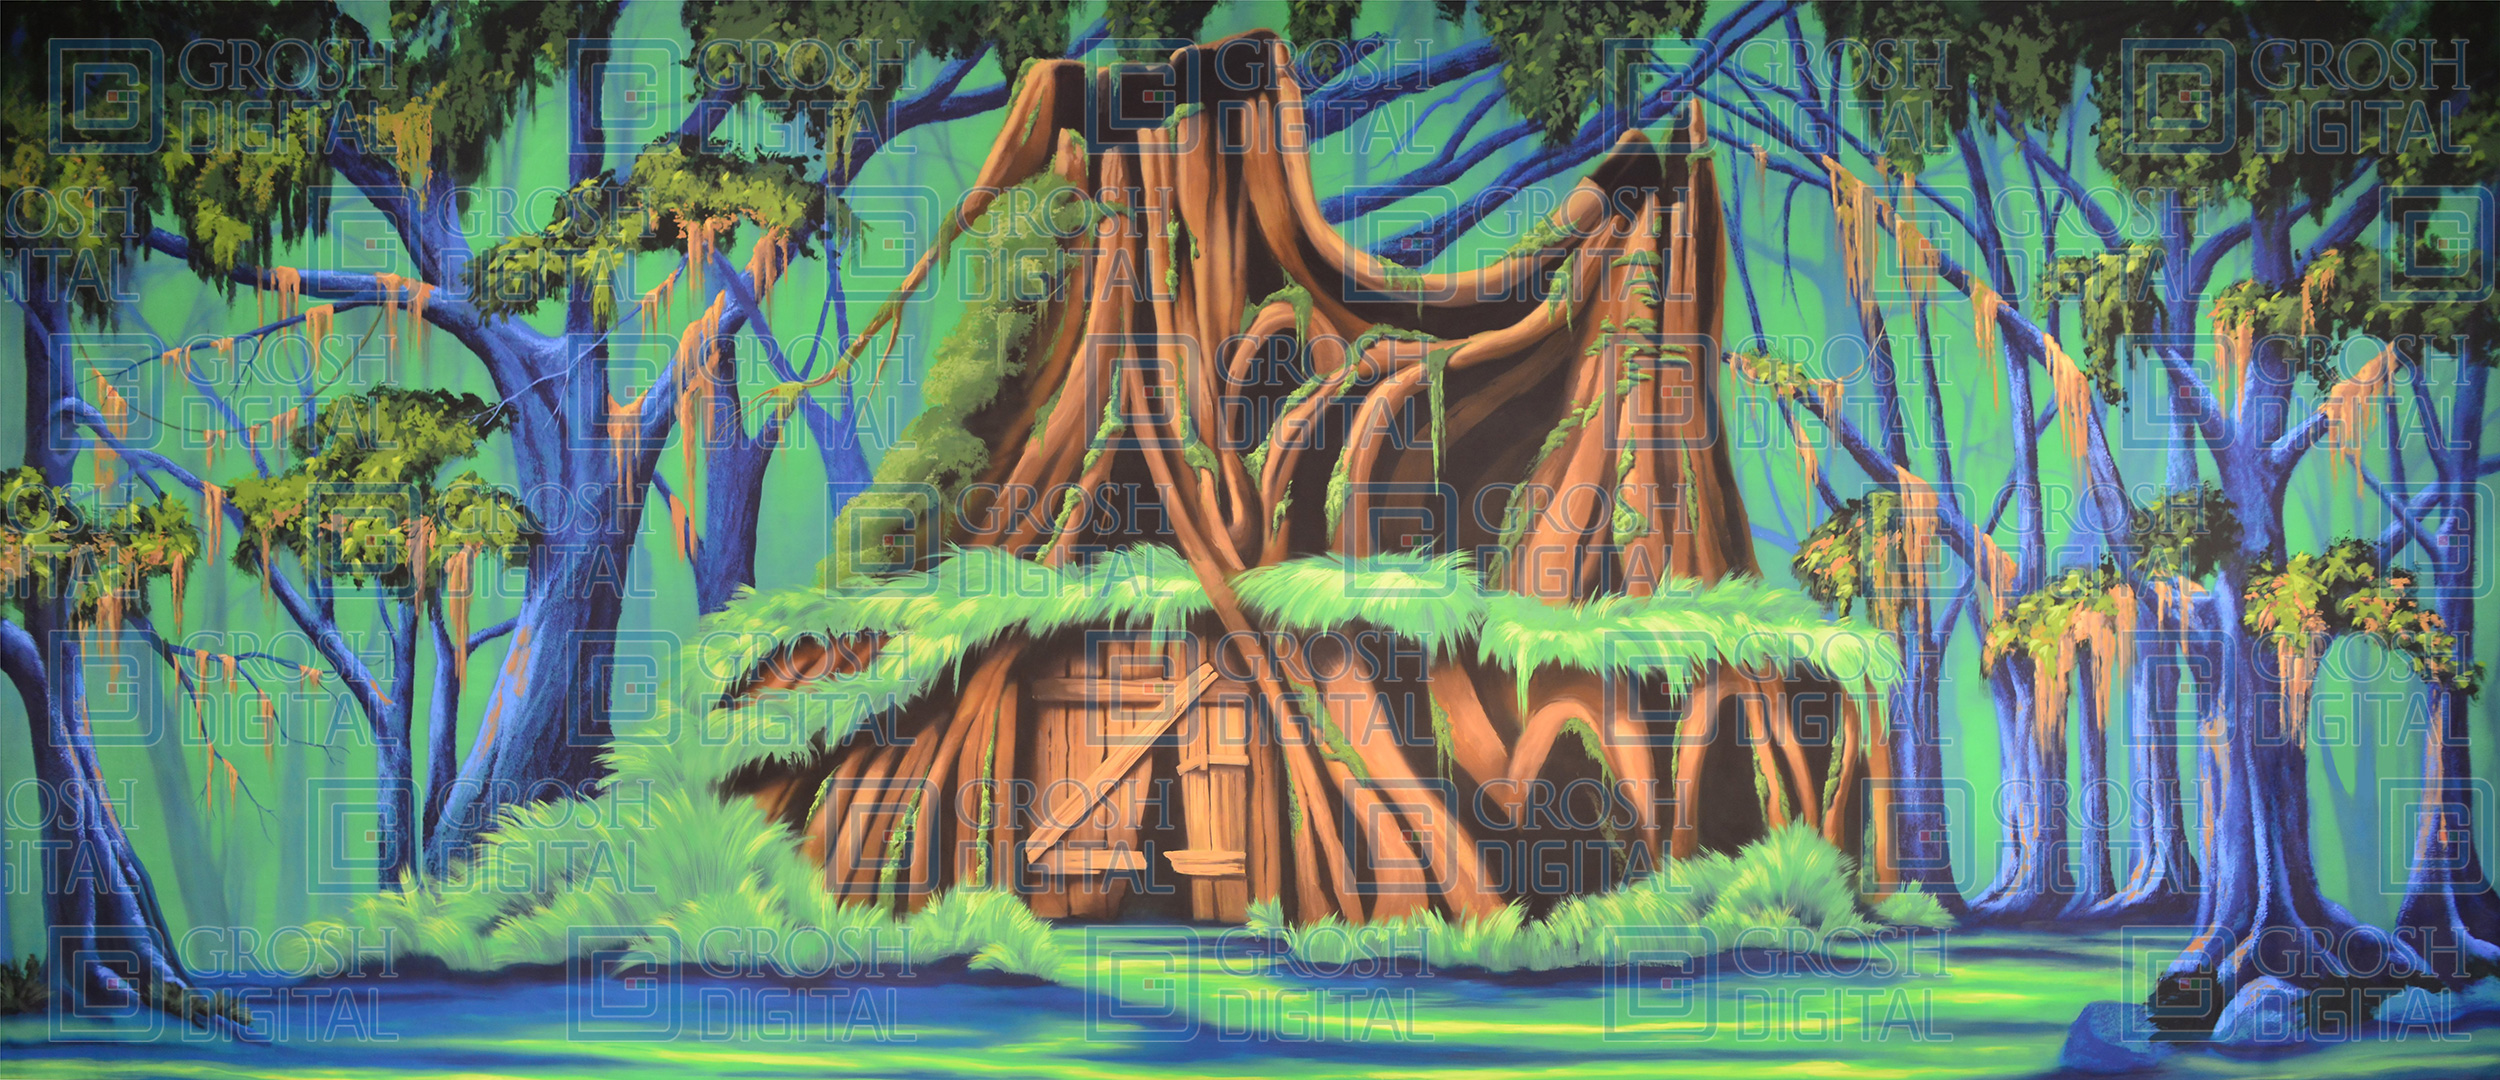 Shrek House Projected Backdrop for Big Fish, Exteriors, Forest, Shrek